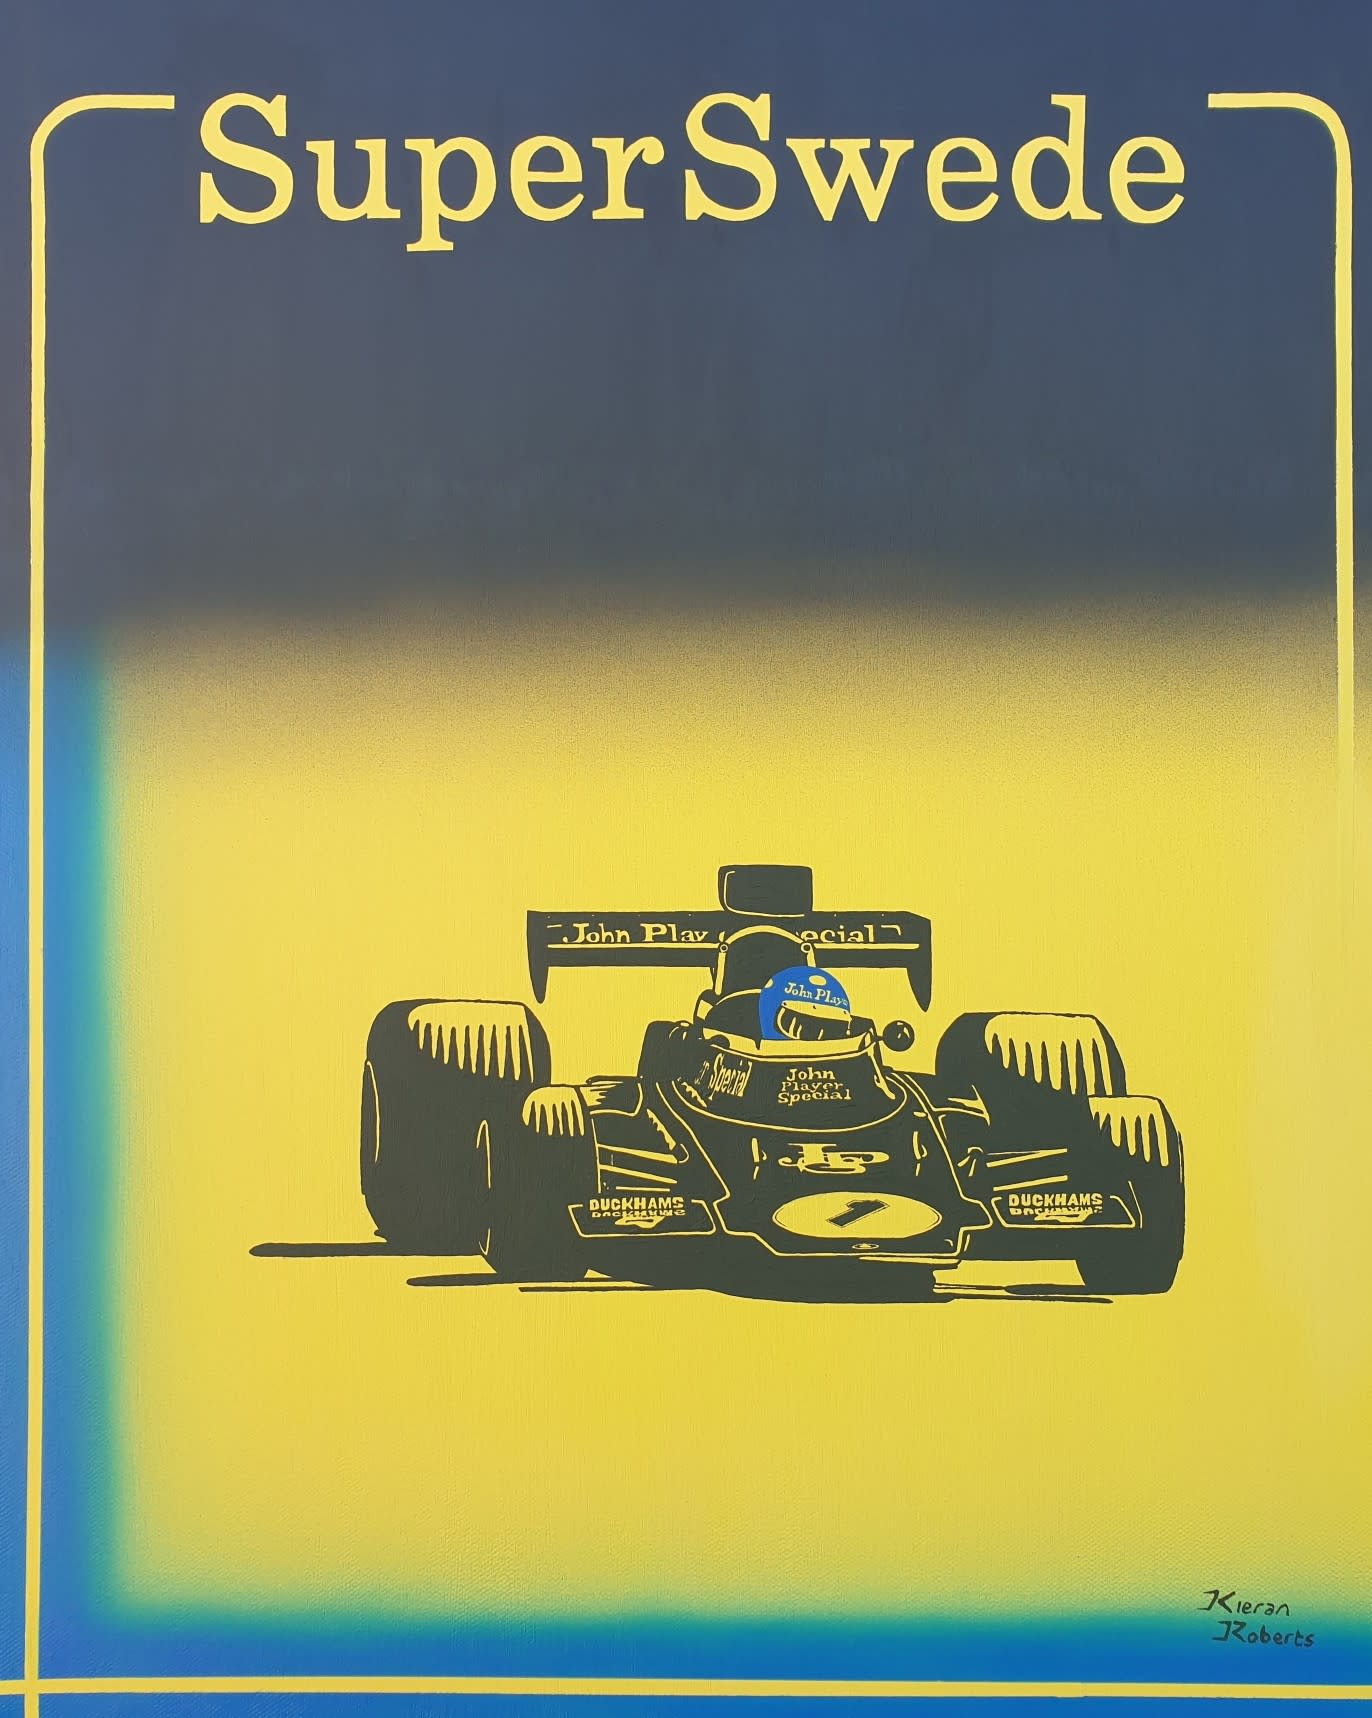 Superswede 1372 x 1718 tctosg